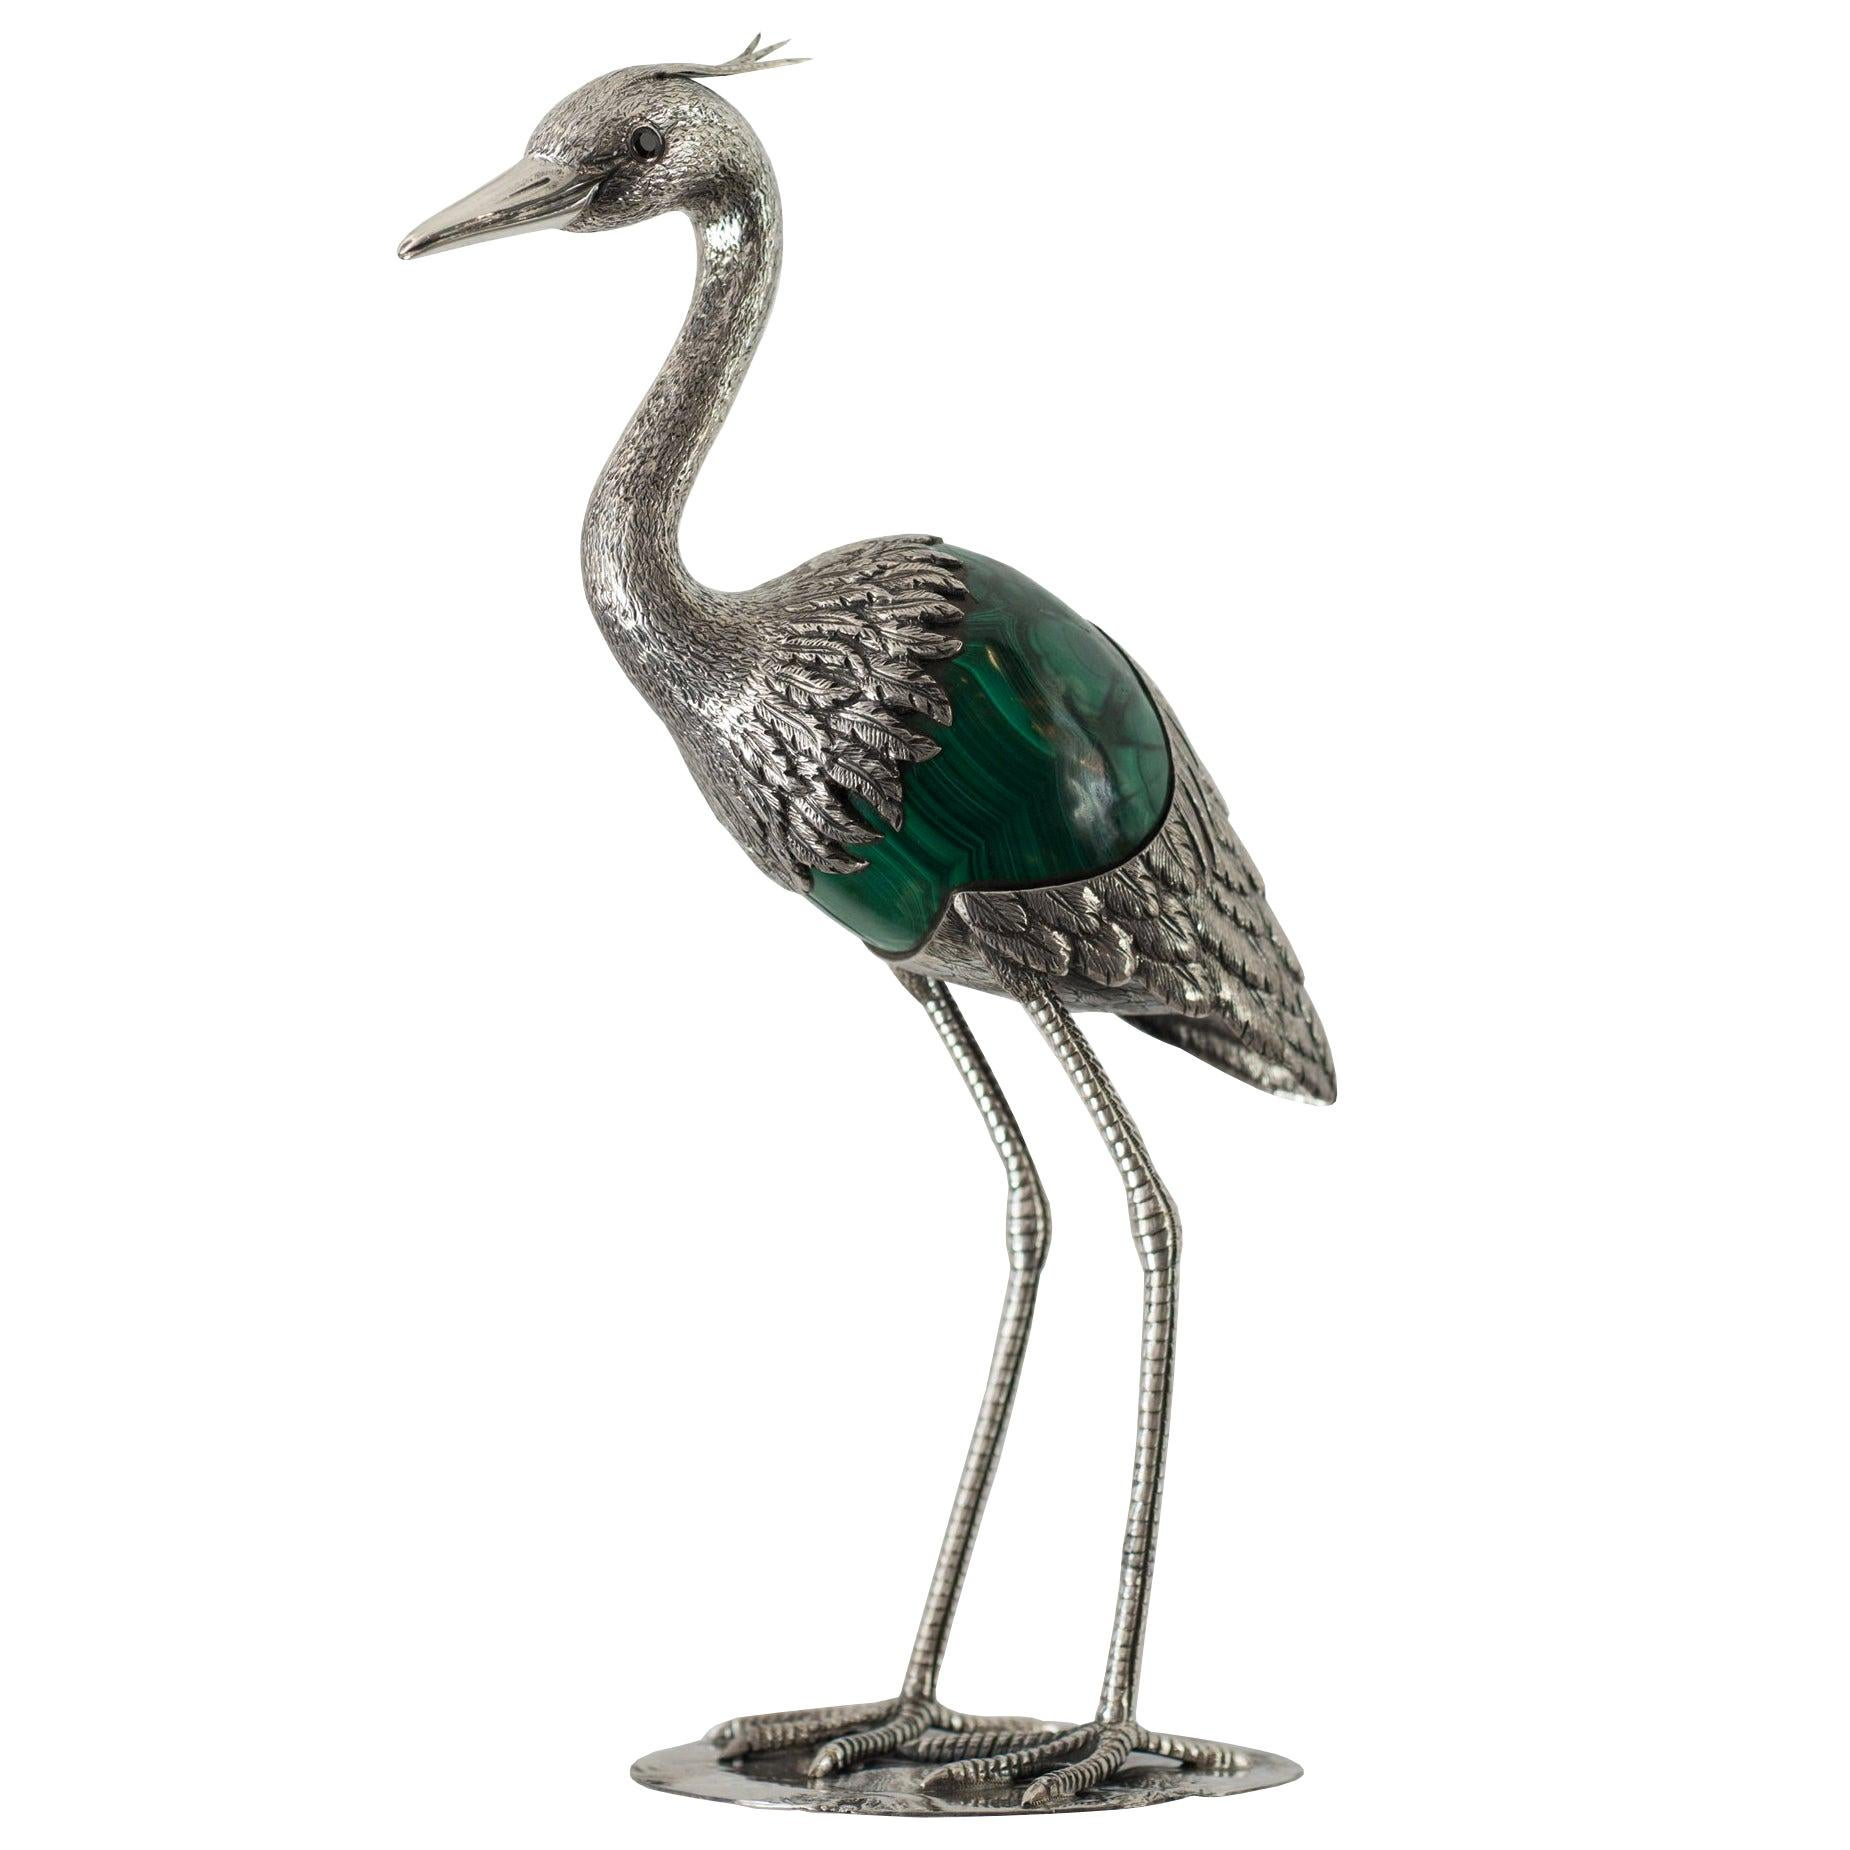 Sterling Silver 925 Heron Sculpture with Green Malachite Stone Egg